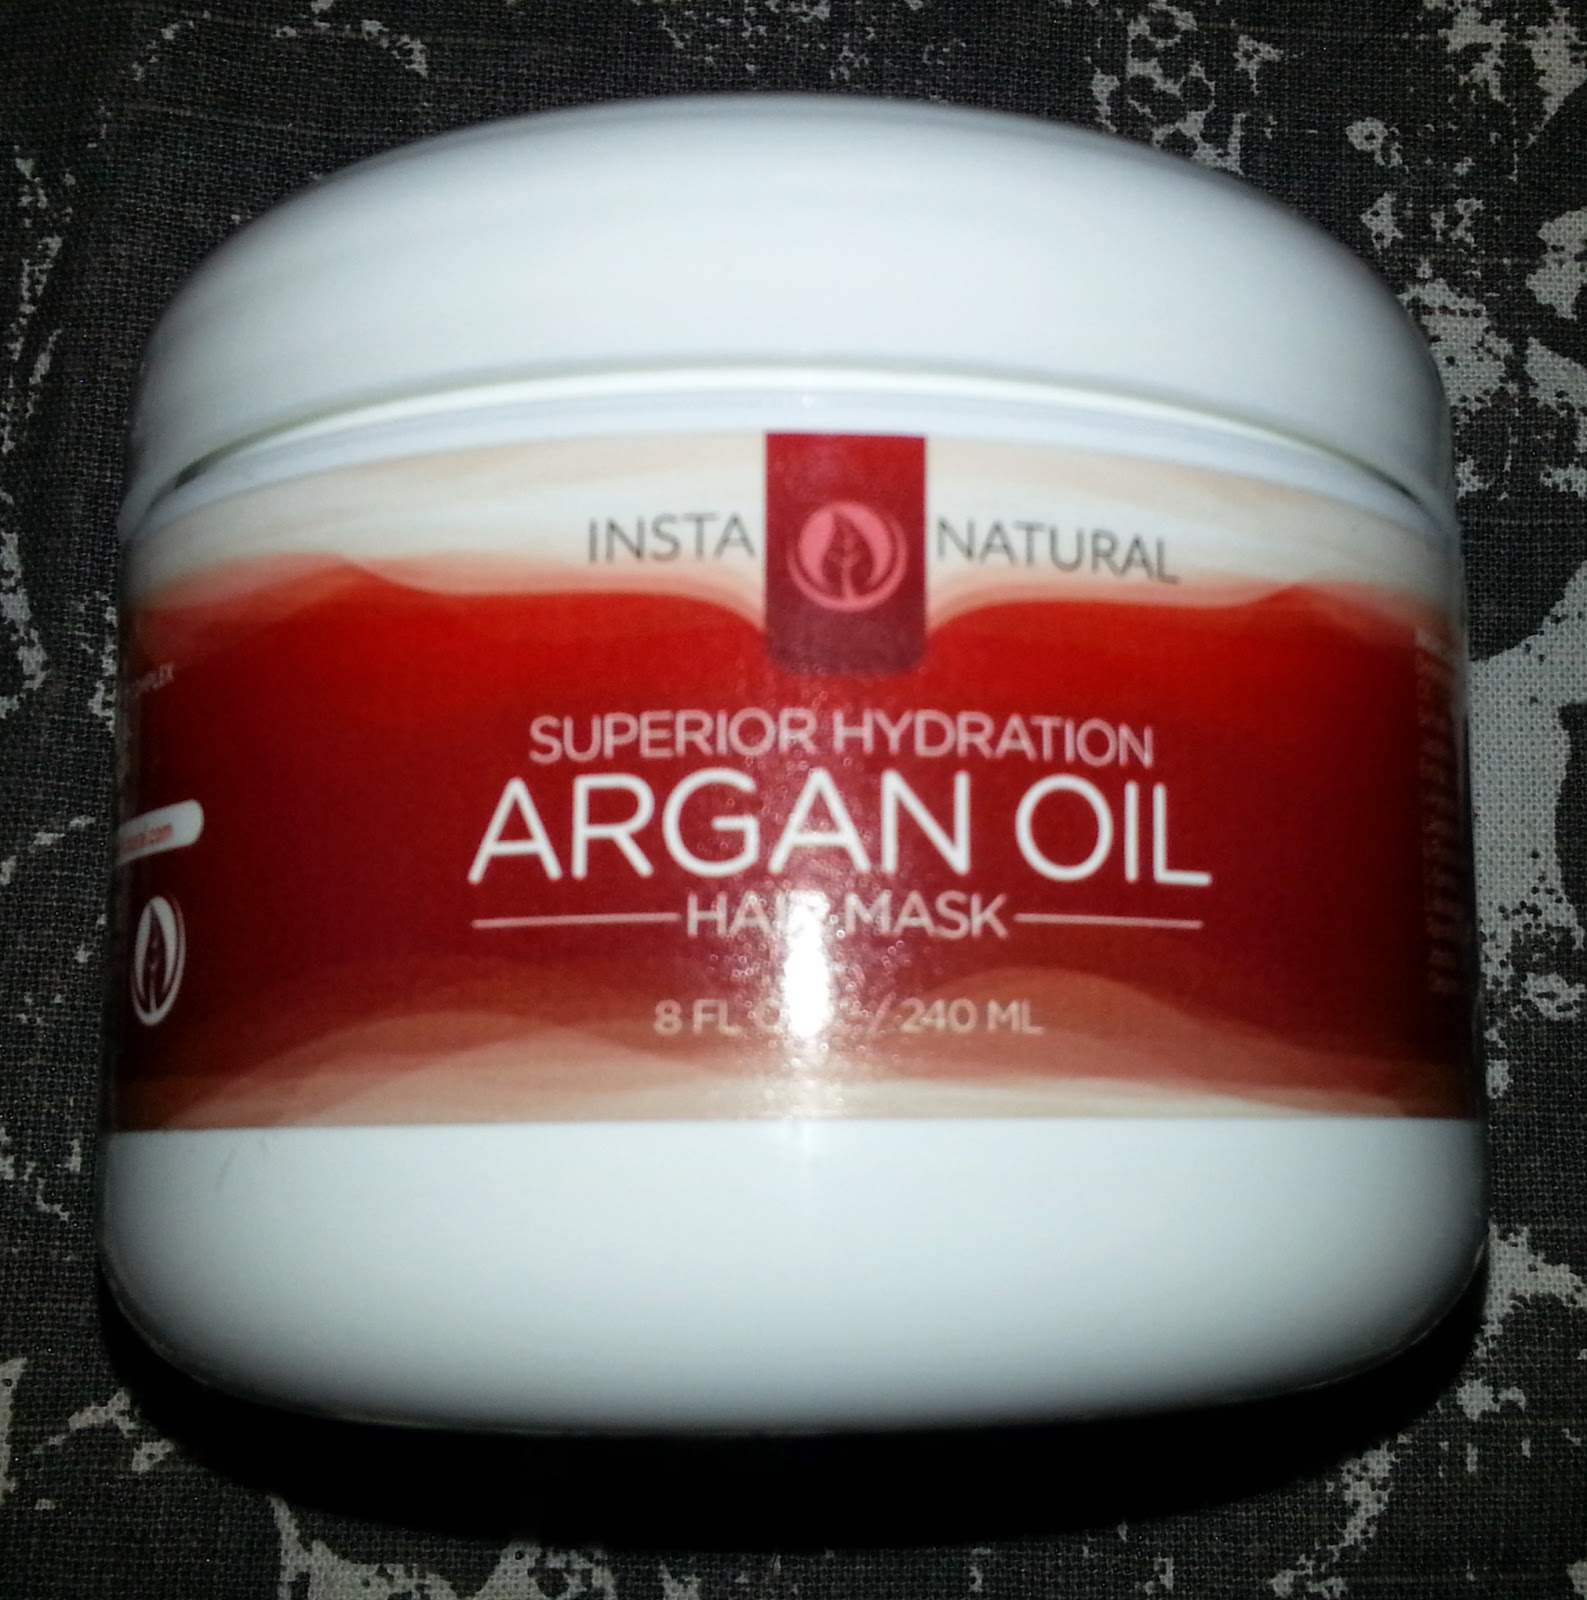 Insta Natural Superior Hydration Argan Oil Hair Mask